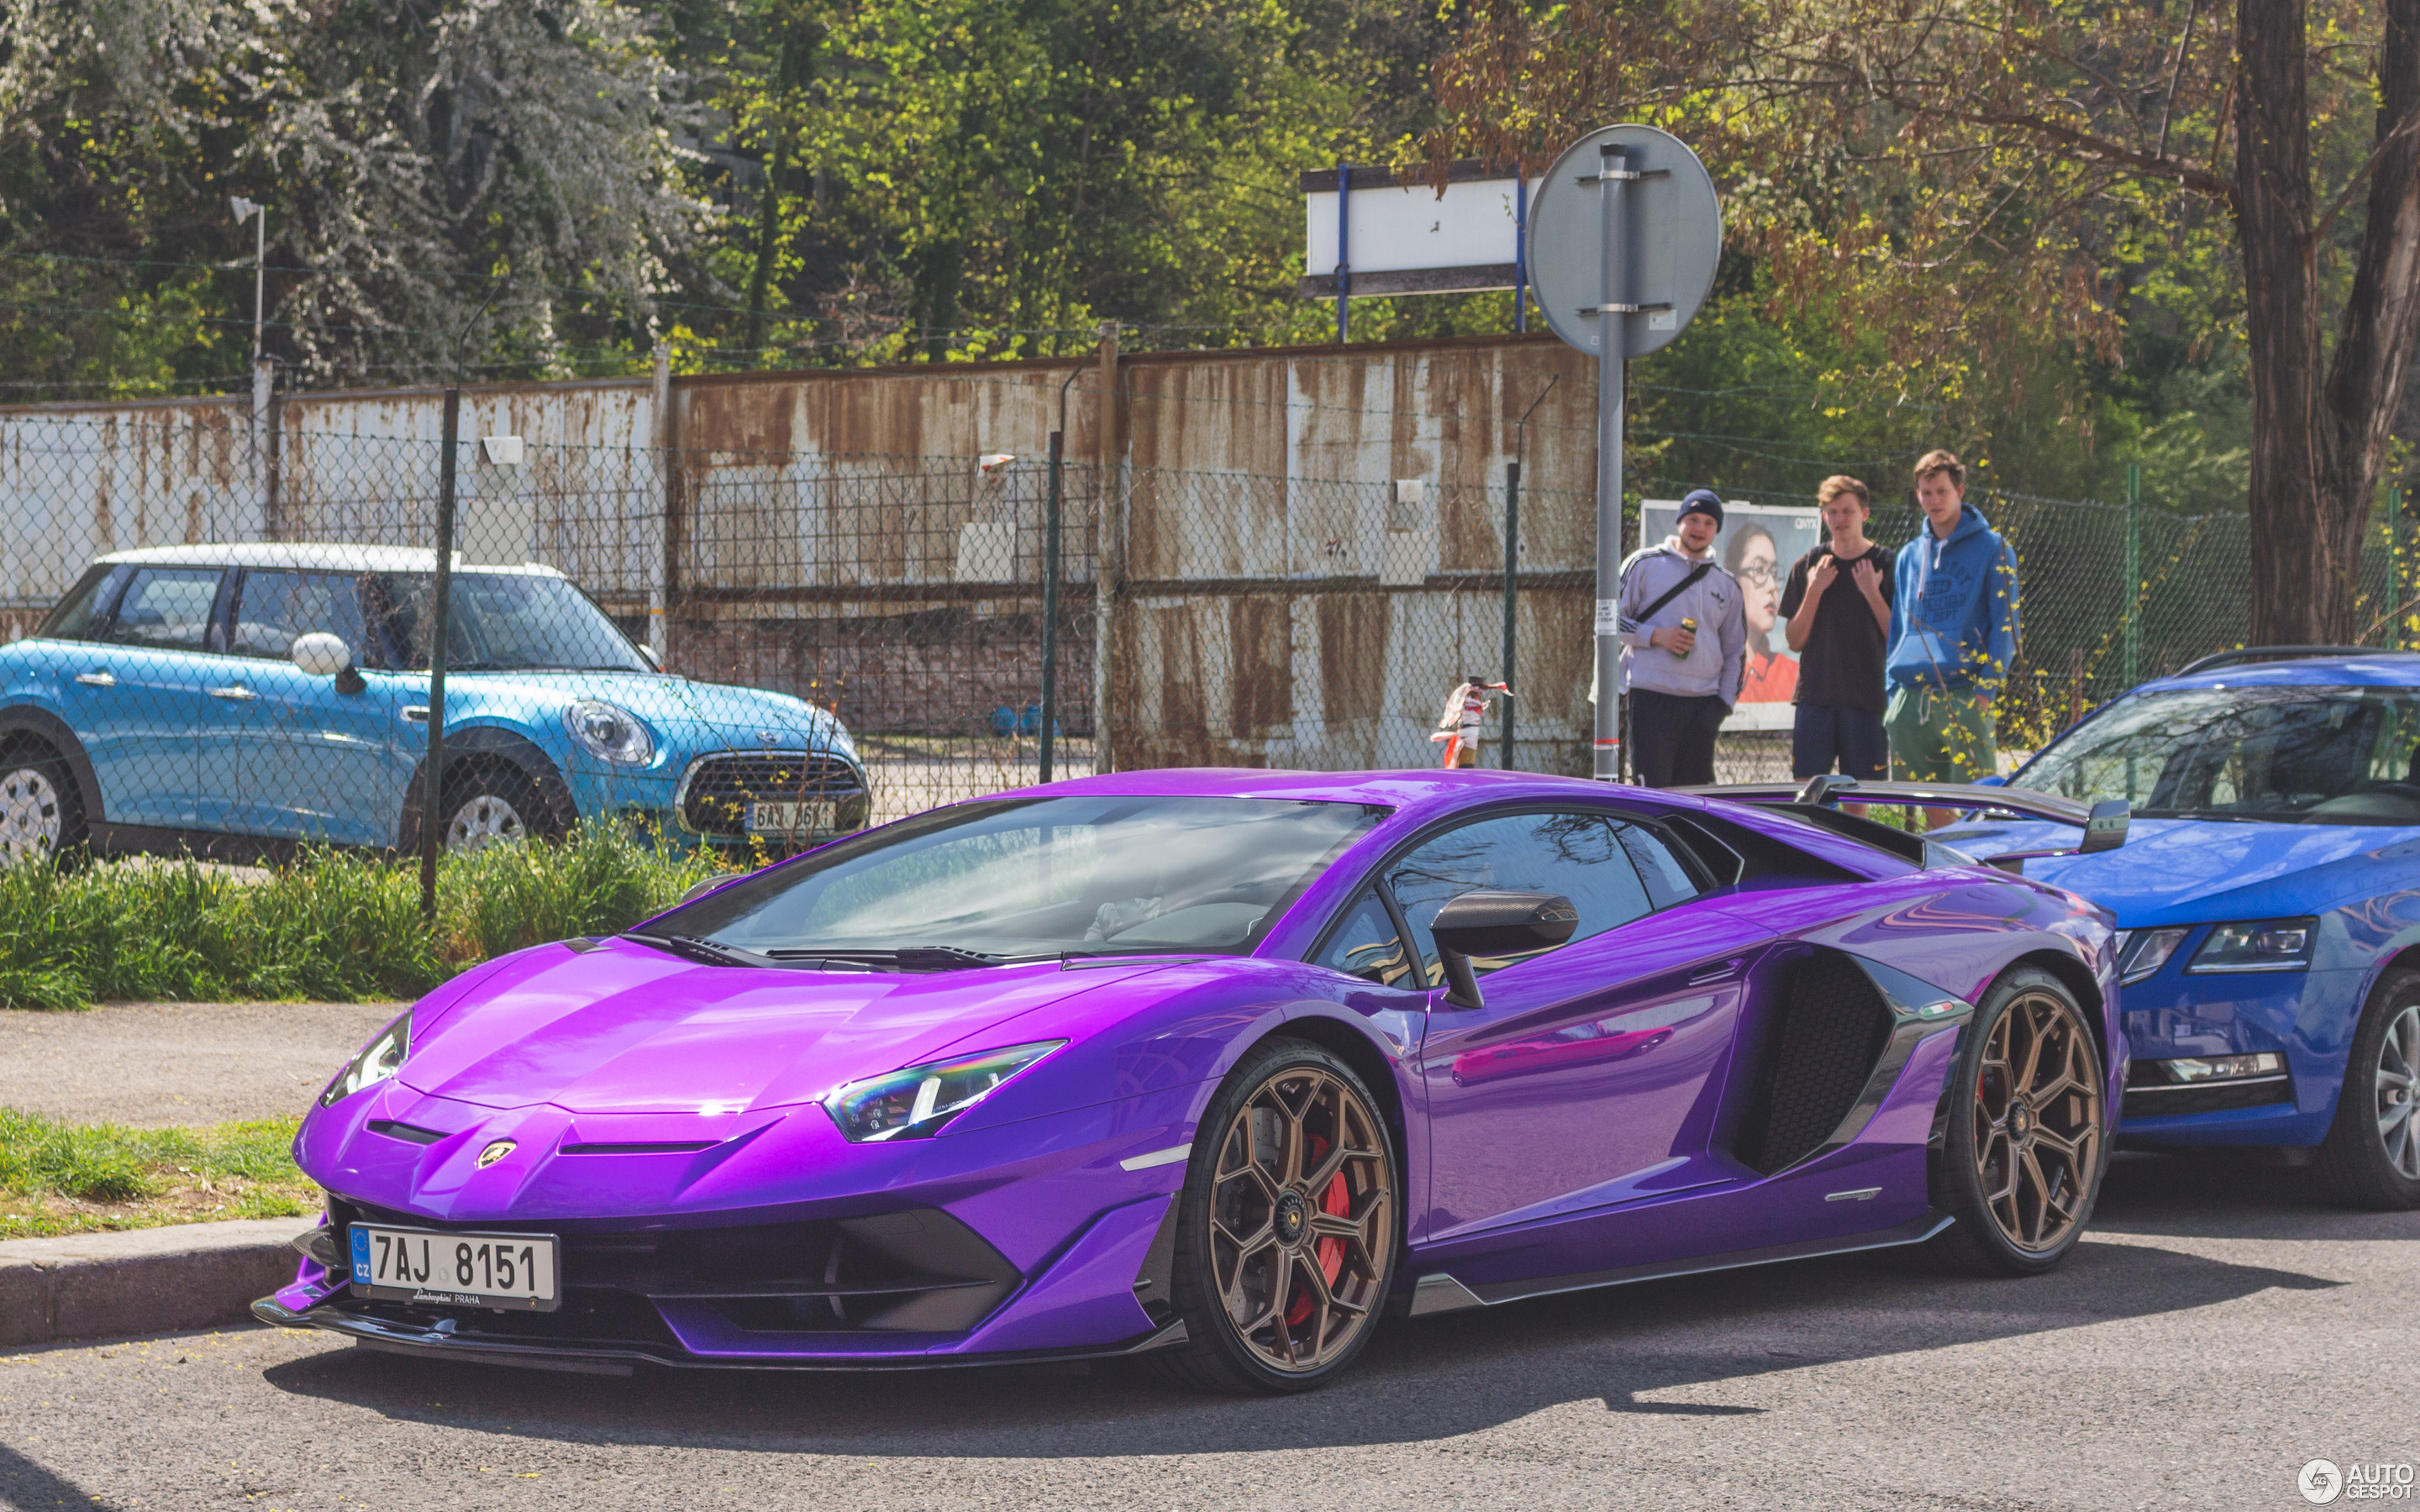 Lamborghini Aventador Lp770 4 Svj 18 April 2019 Autogespot